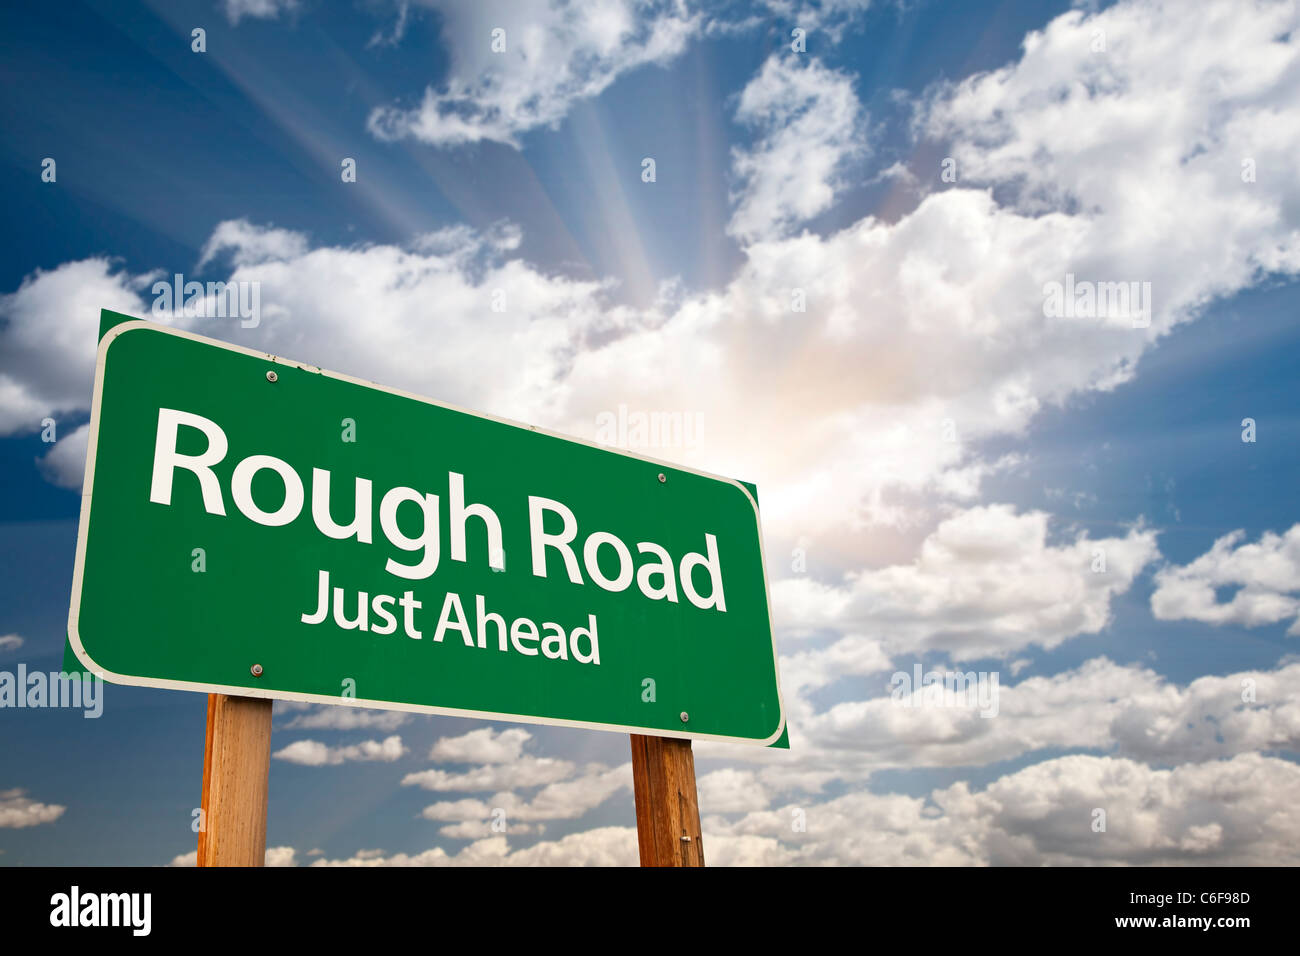 Rough Road, Just Ahead Green Road Sign Over Dramatic Sky, Clouds and Sunburst. Stock Photo